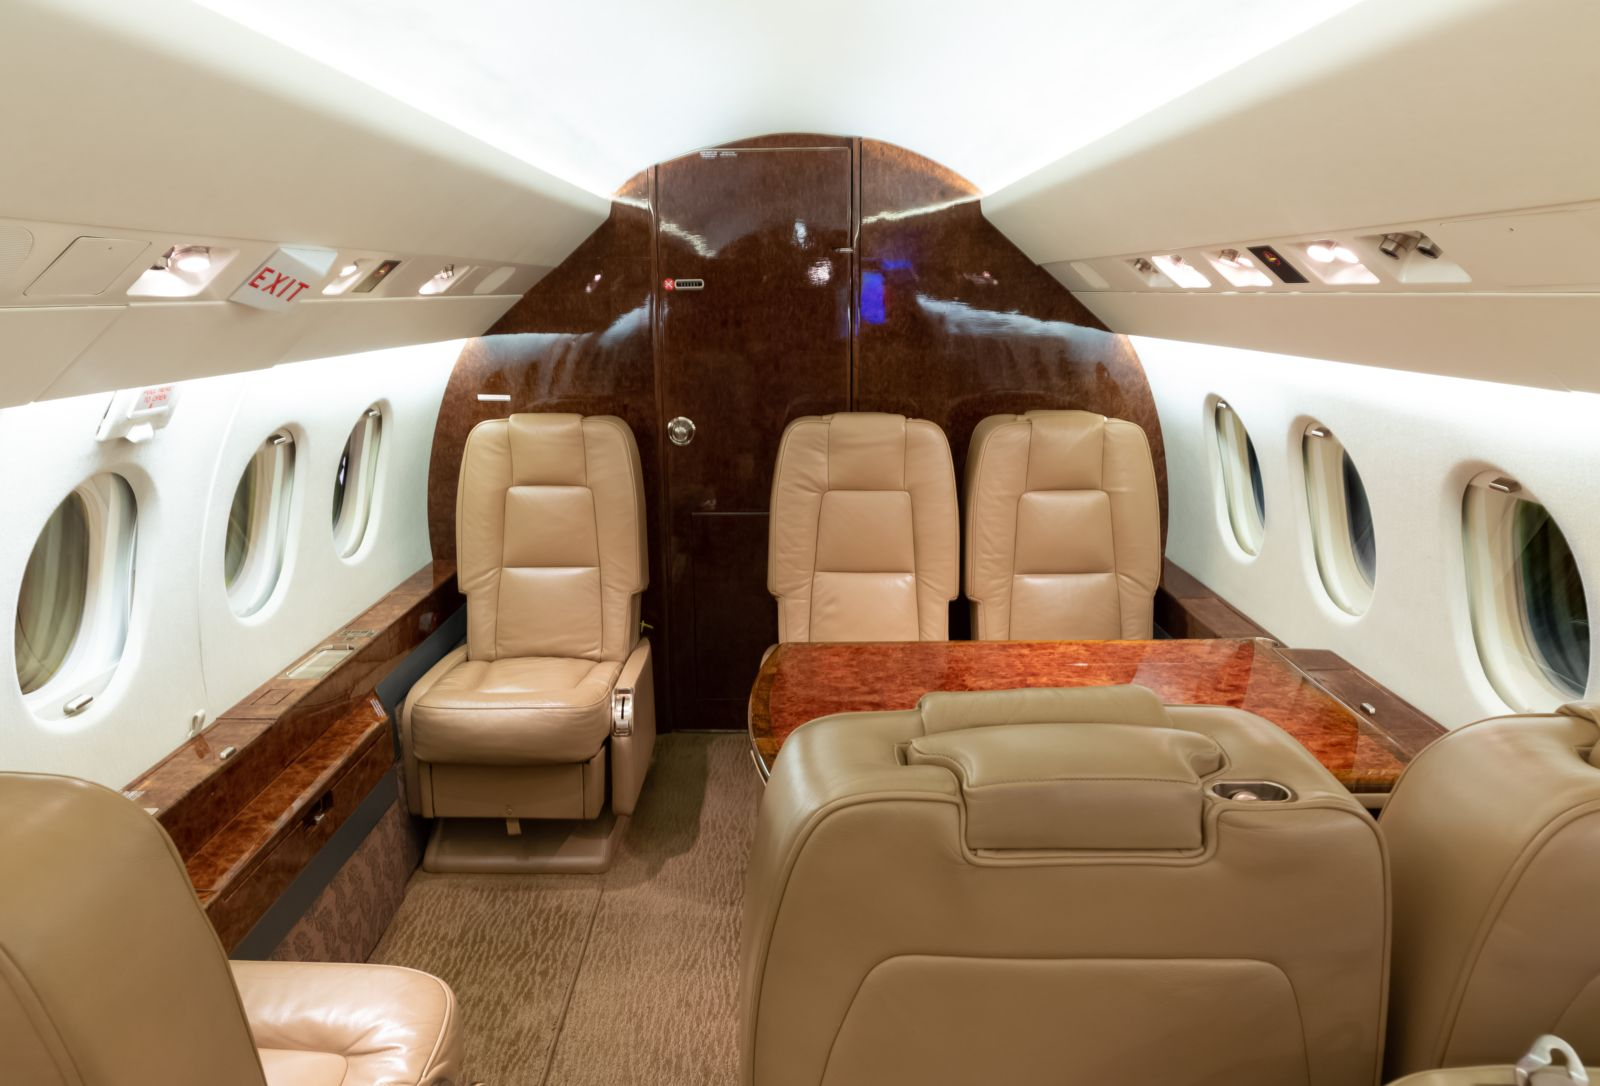 Dassault Falcon 2000  S/N 60 for sale | gallery image: /userfiles/images/F2000_sn60/aft%20aft.jpg